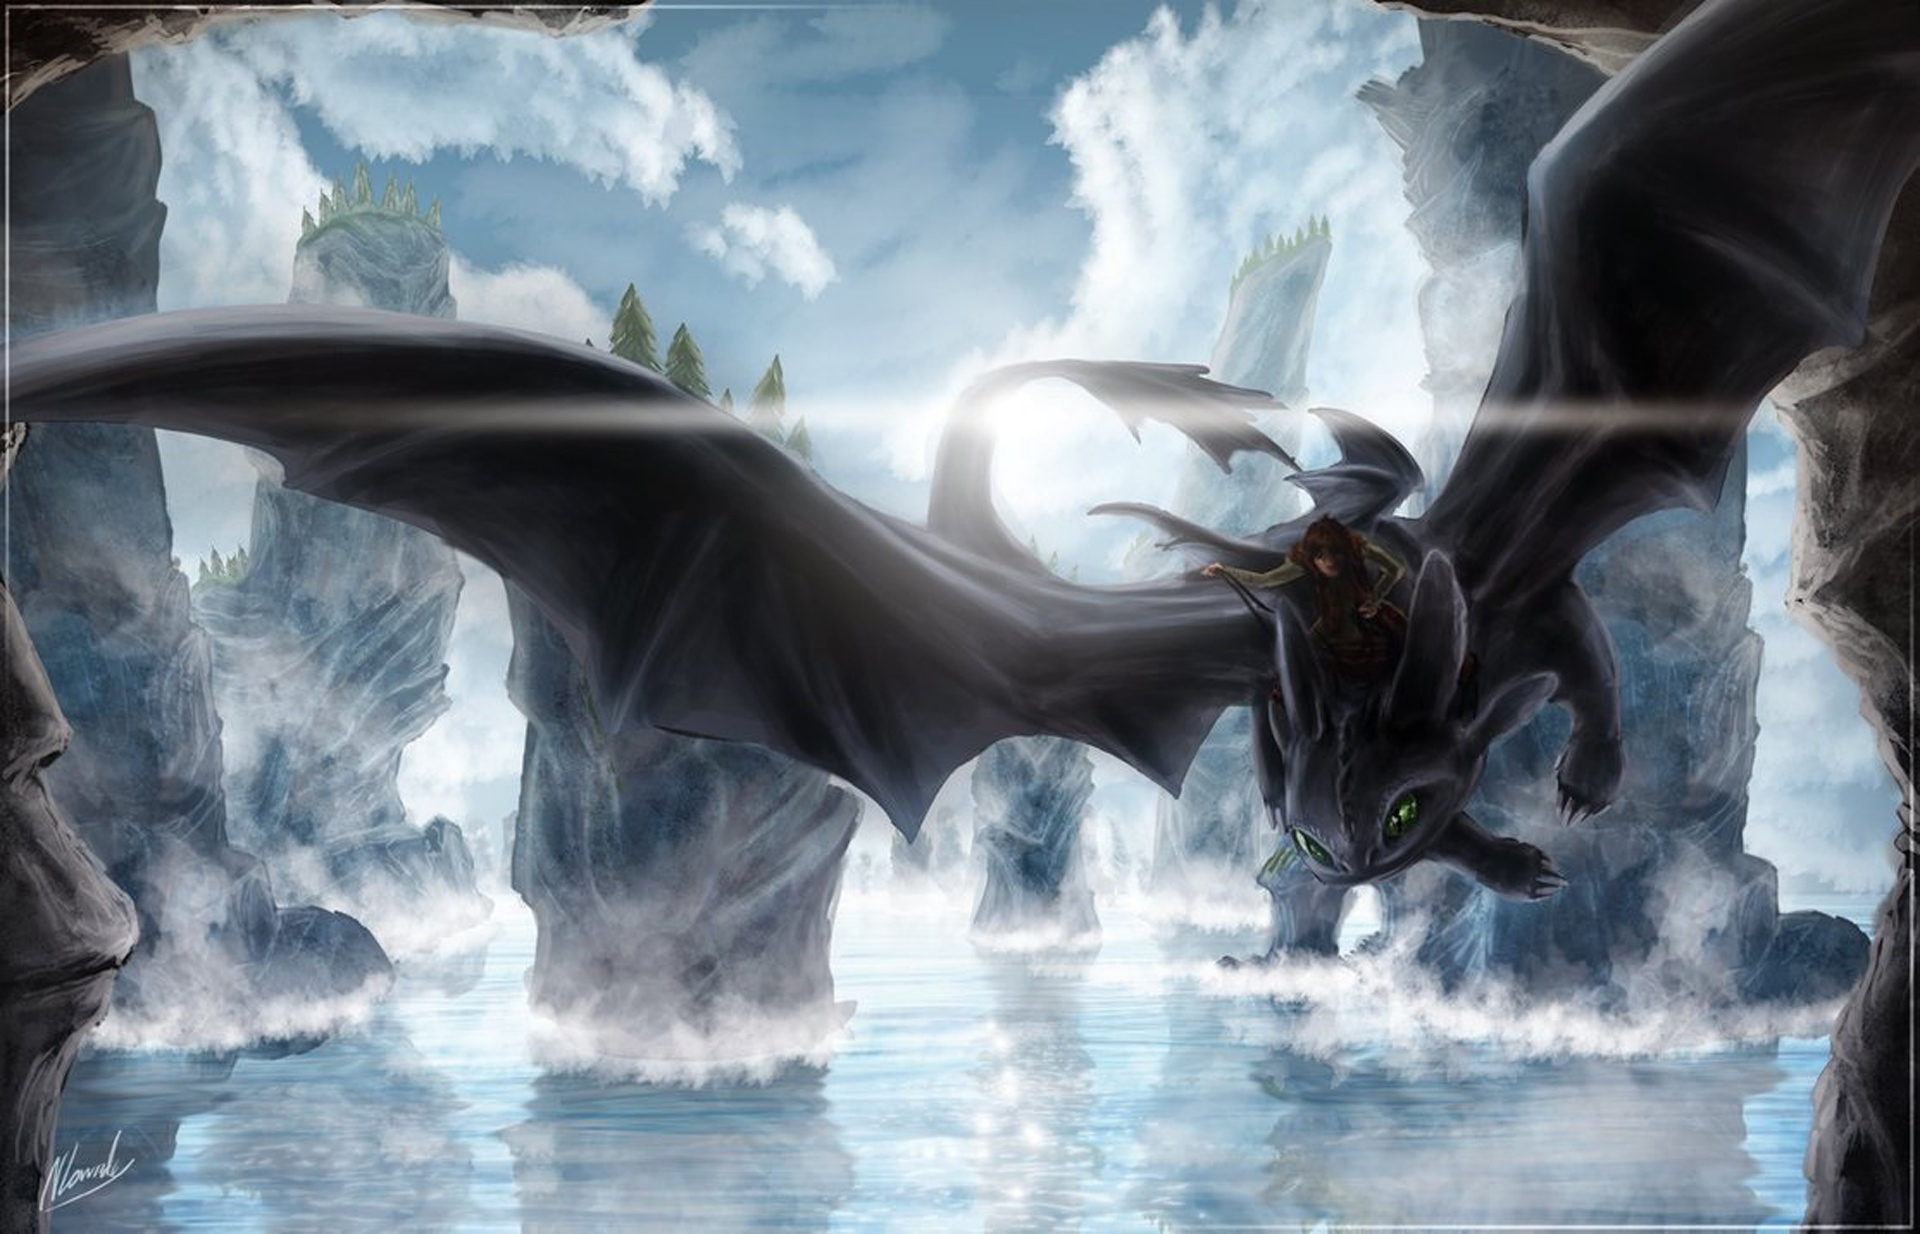 Nightfury How to Train Your Dragon 2 Wallpapers Desktop Backgrounds 1920x1234